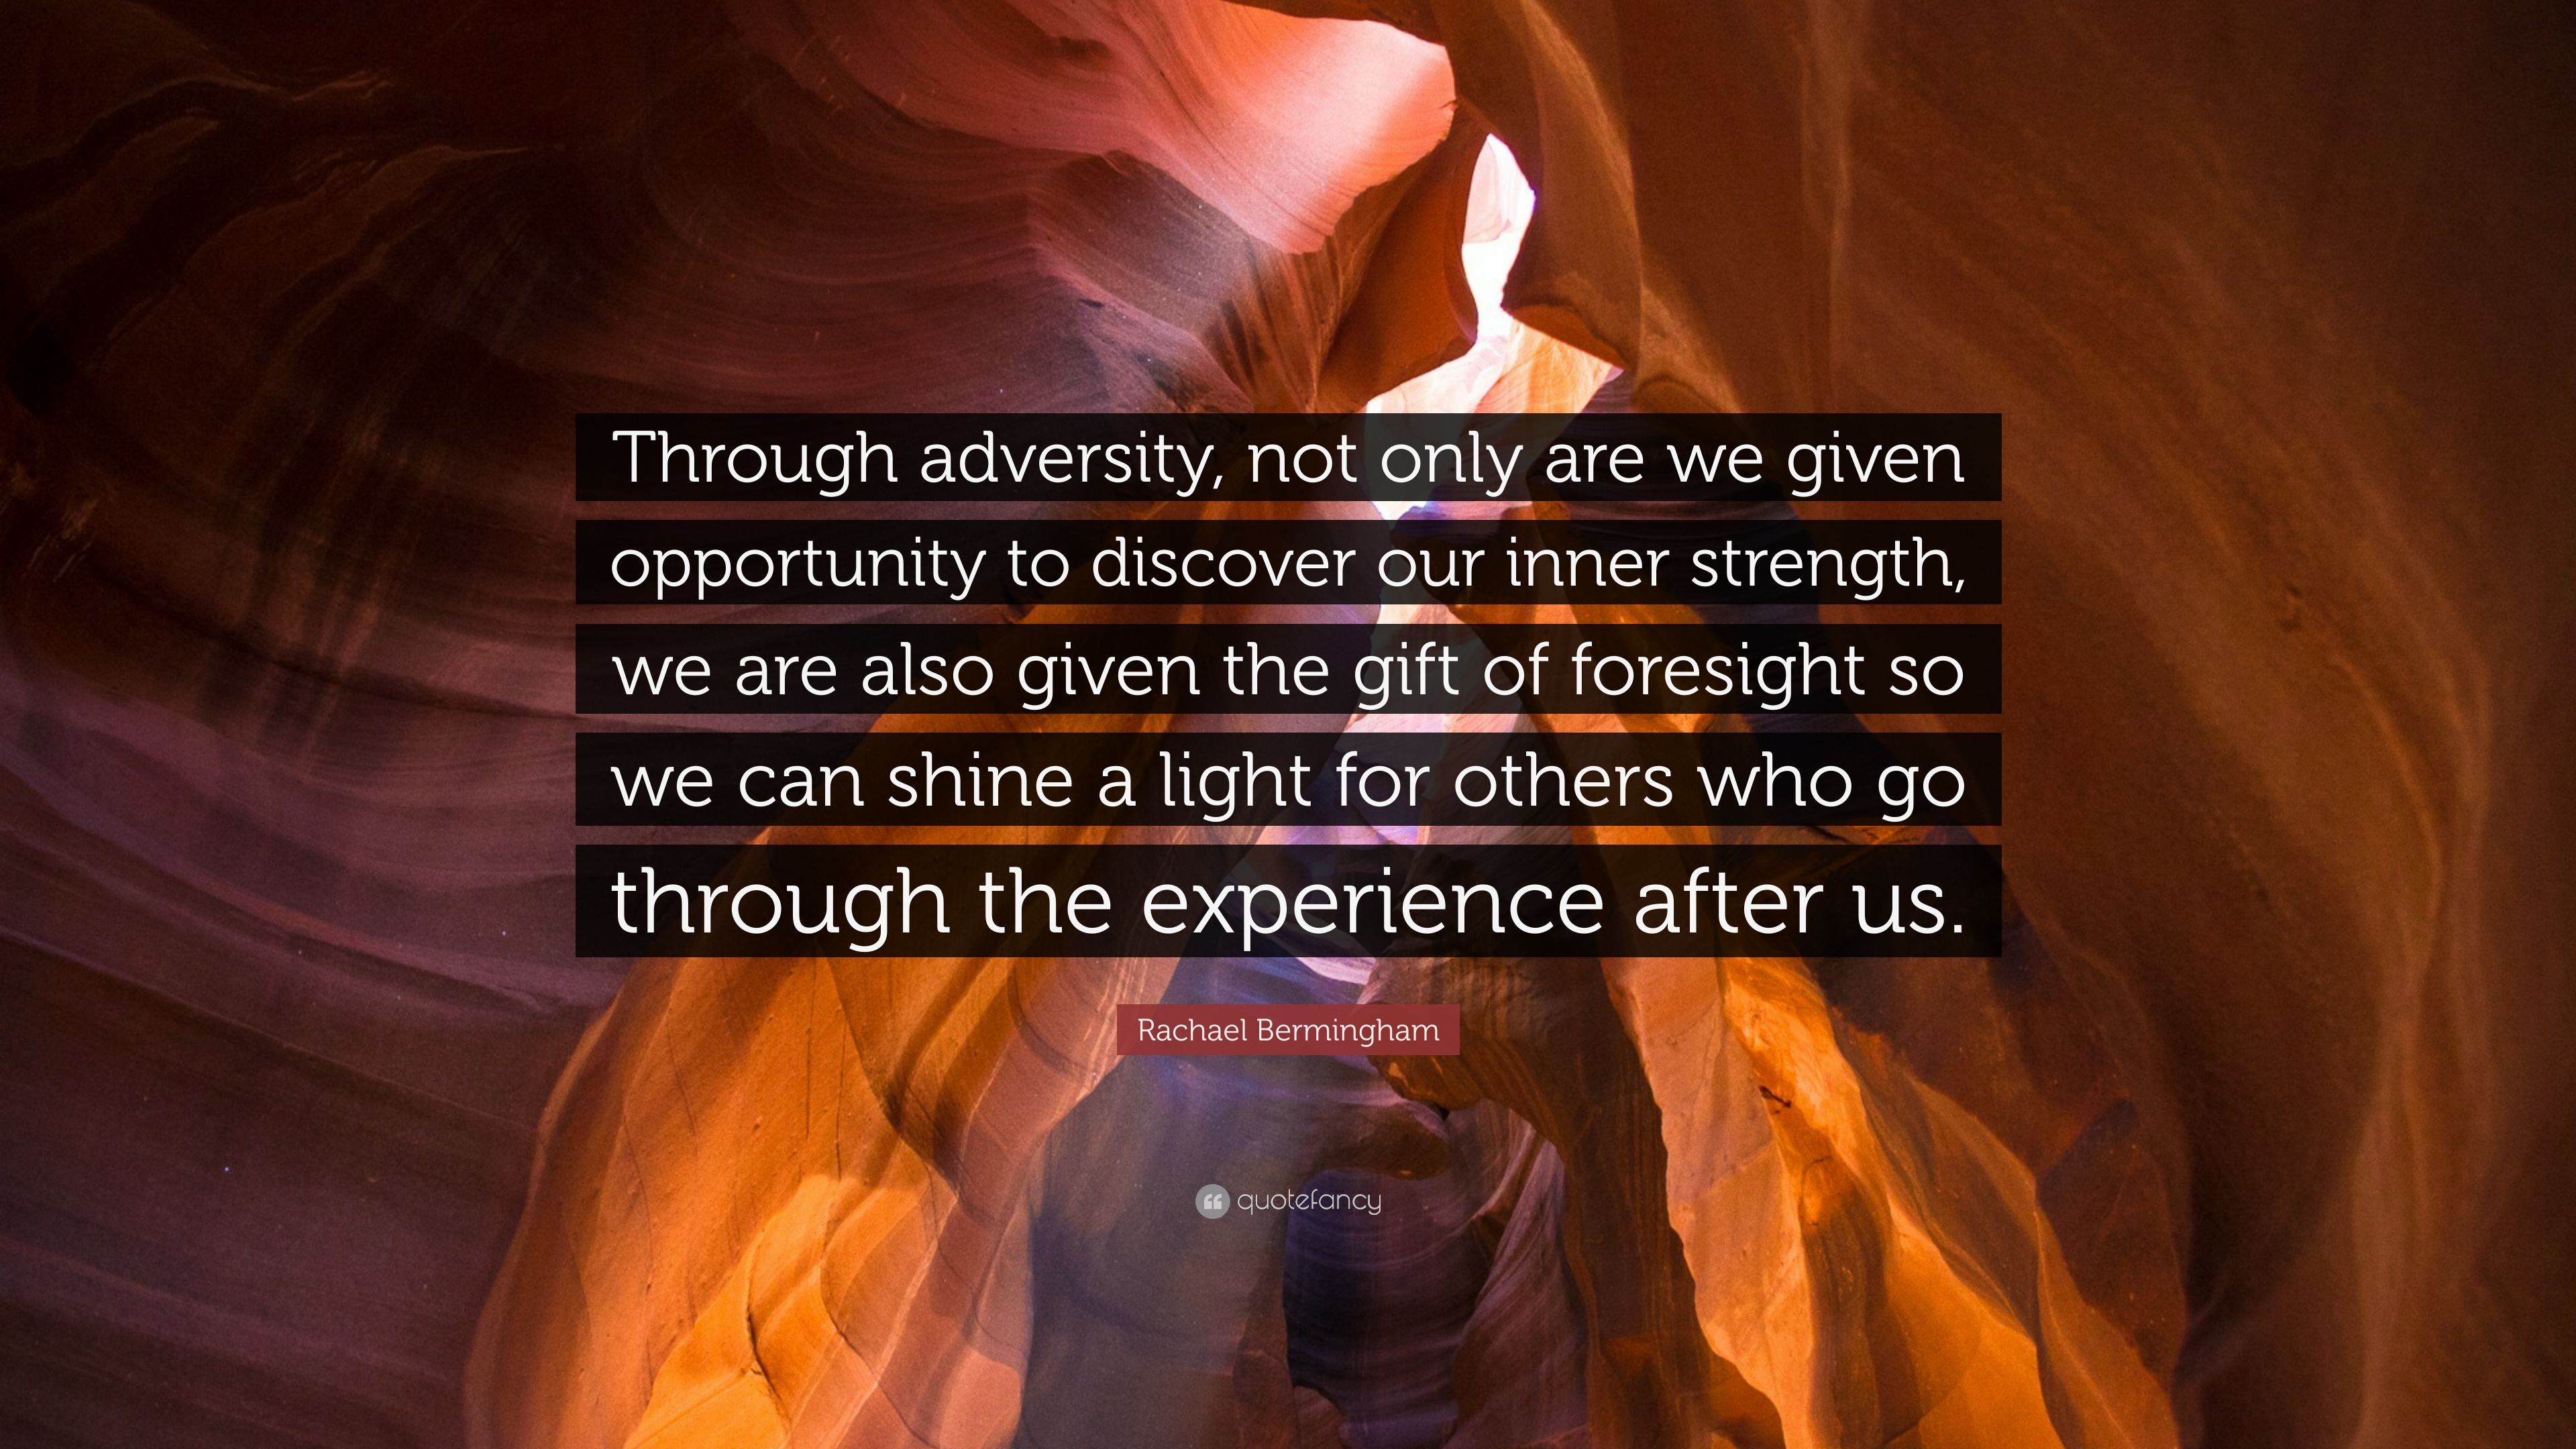 Adversity helps us discover who we are